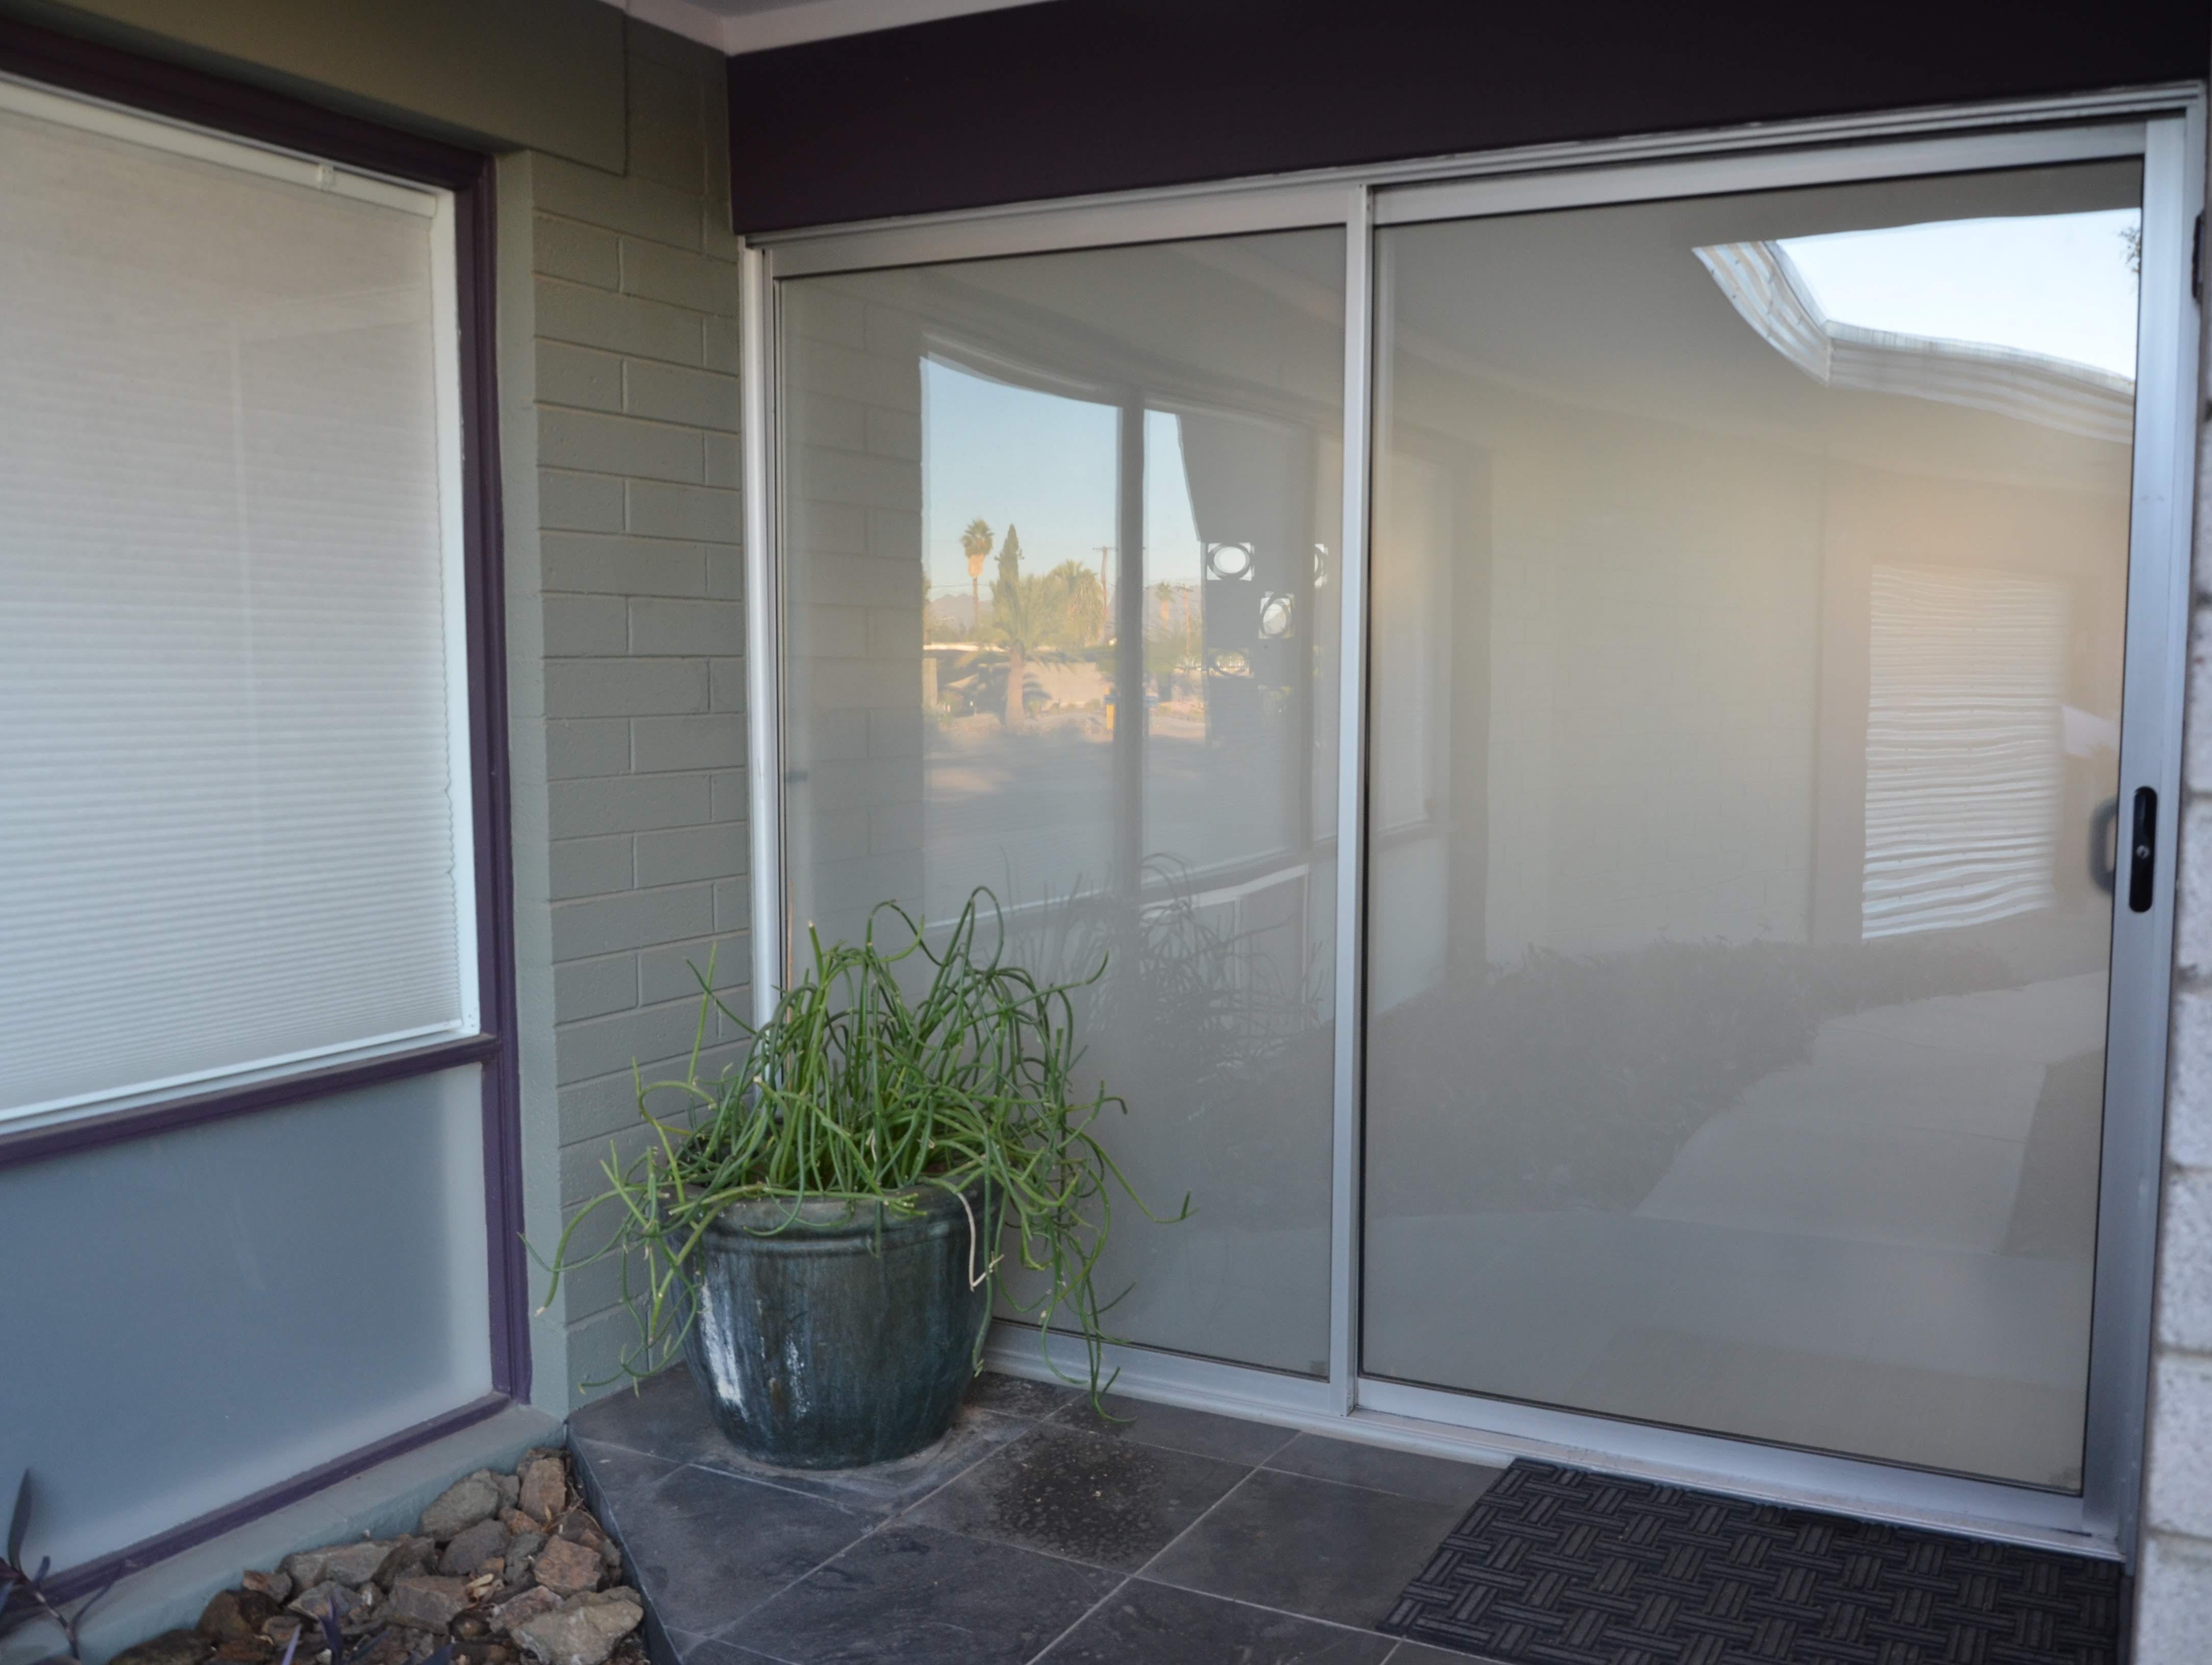 Visitors to the Kaye home enter through a frosted sliding glass door, which throws some visitors off.